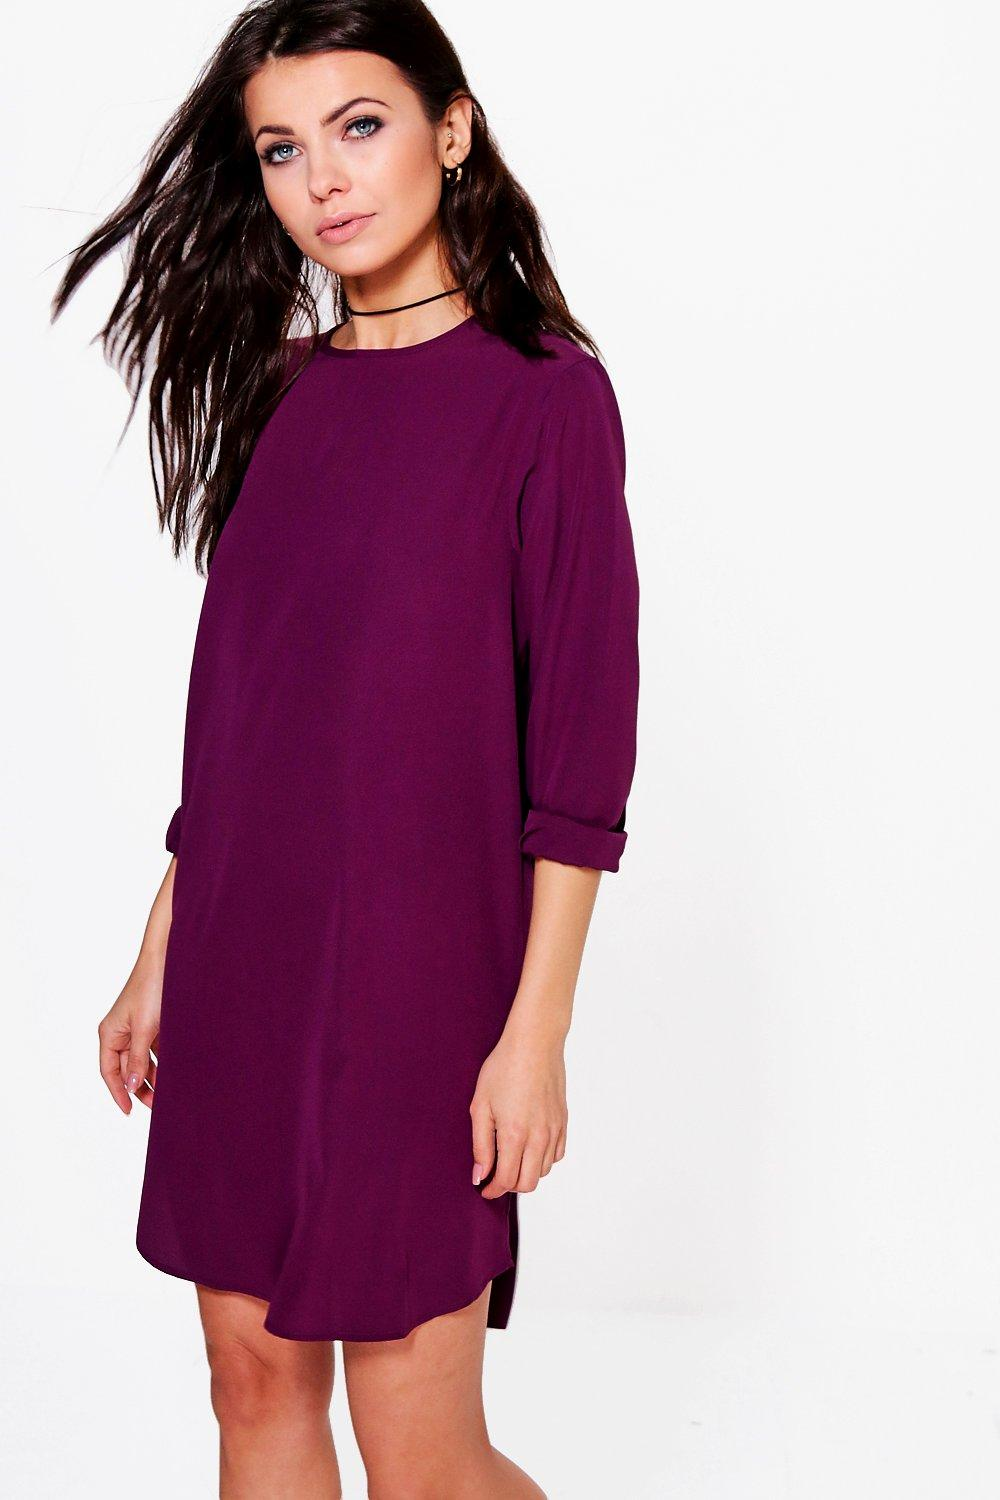 Shop from the world's largest selection and best deals for Long Sleeve Shift Dresses for Women. Shop with confidence on eBay!